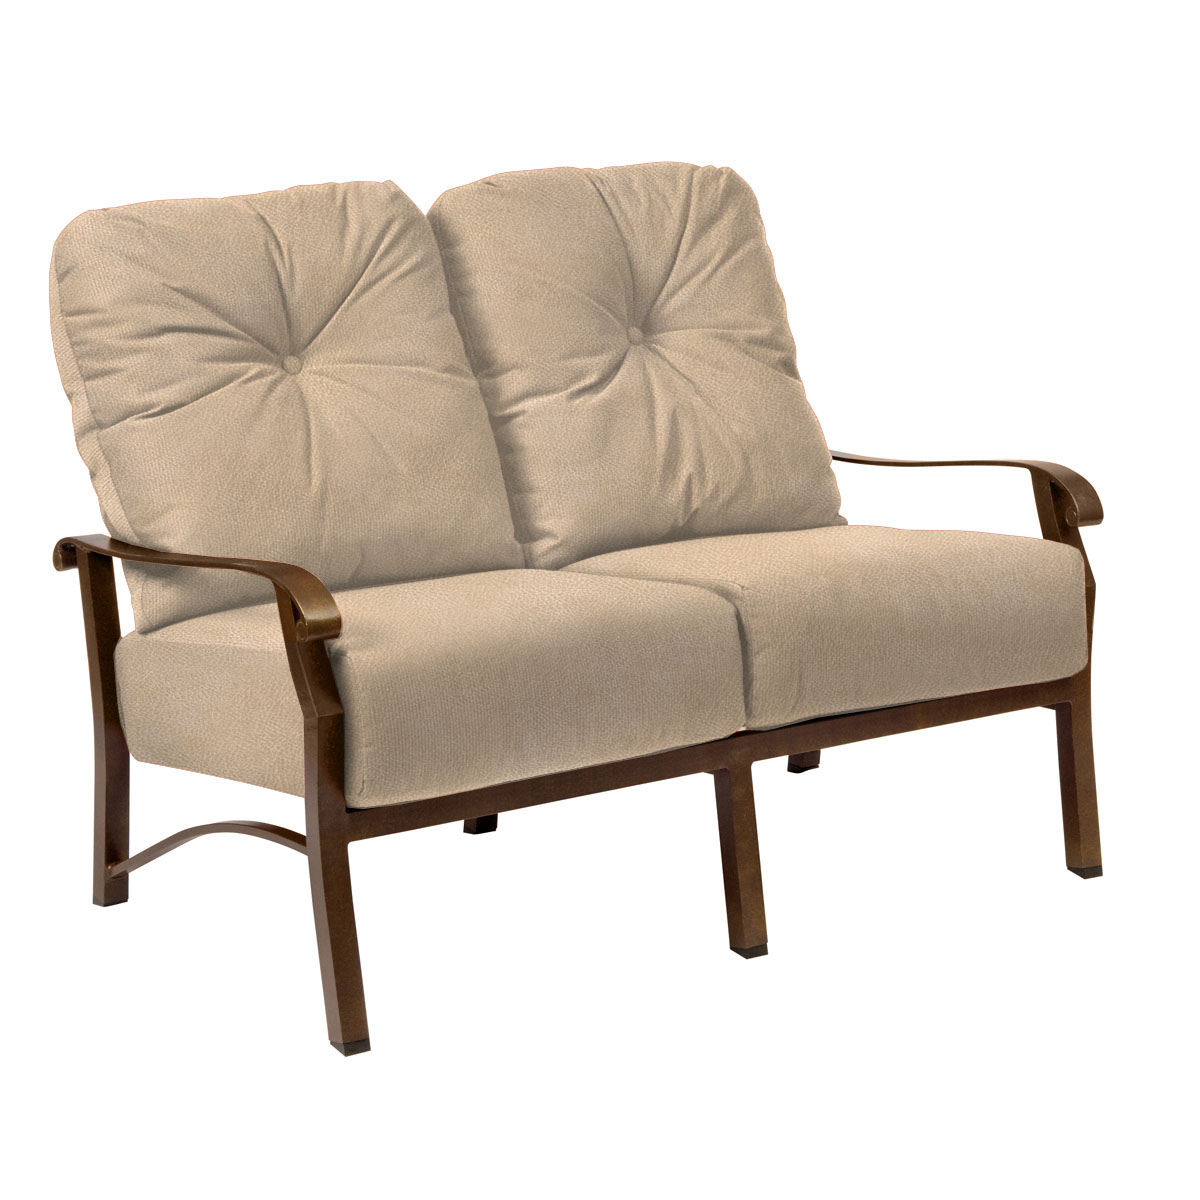 Cortland Cushion Love Seat Scout & Nimble on Living Accents Cortland Patio Set id=36287